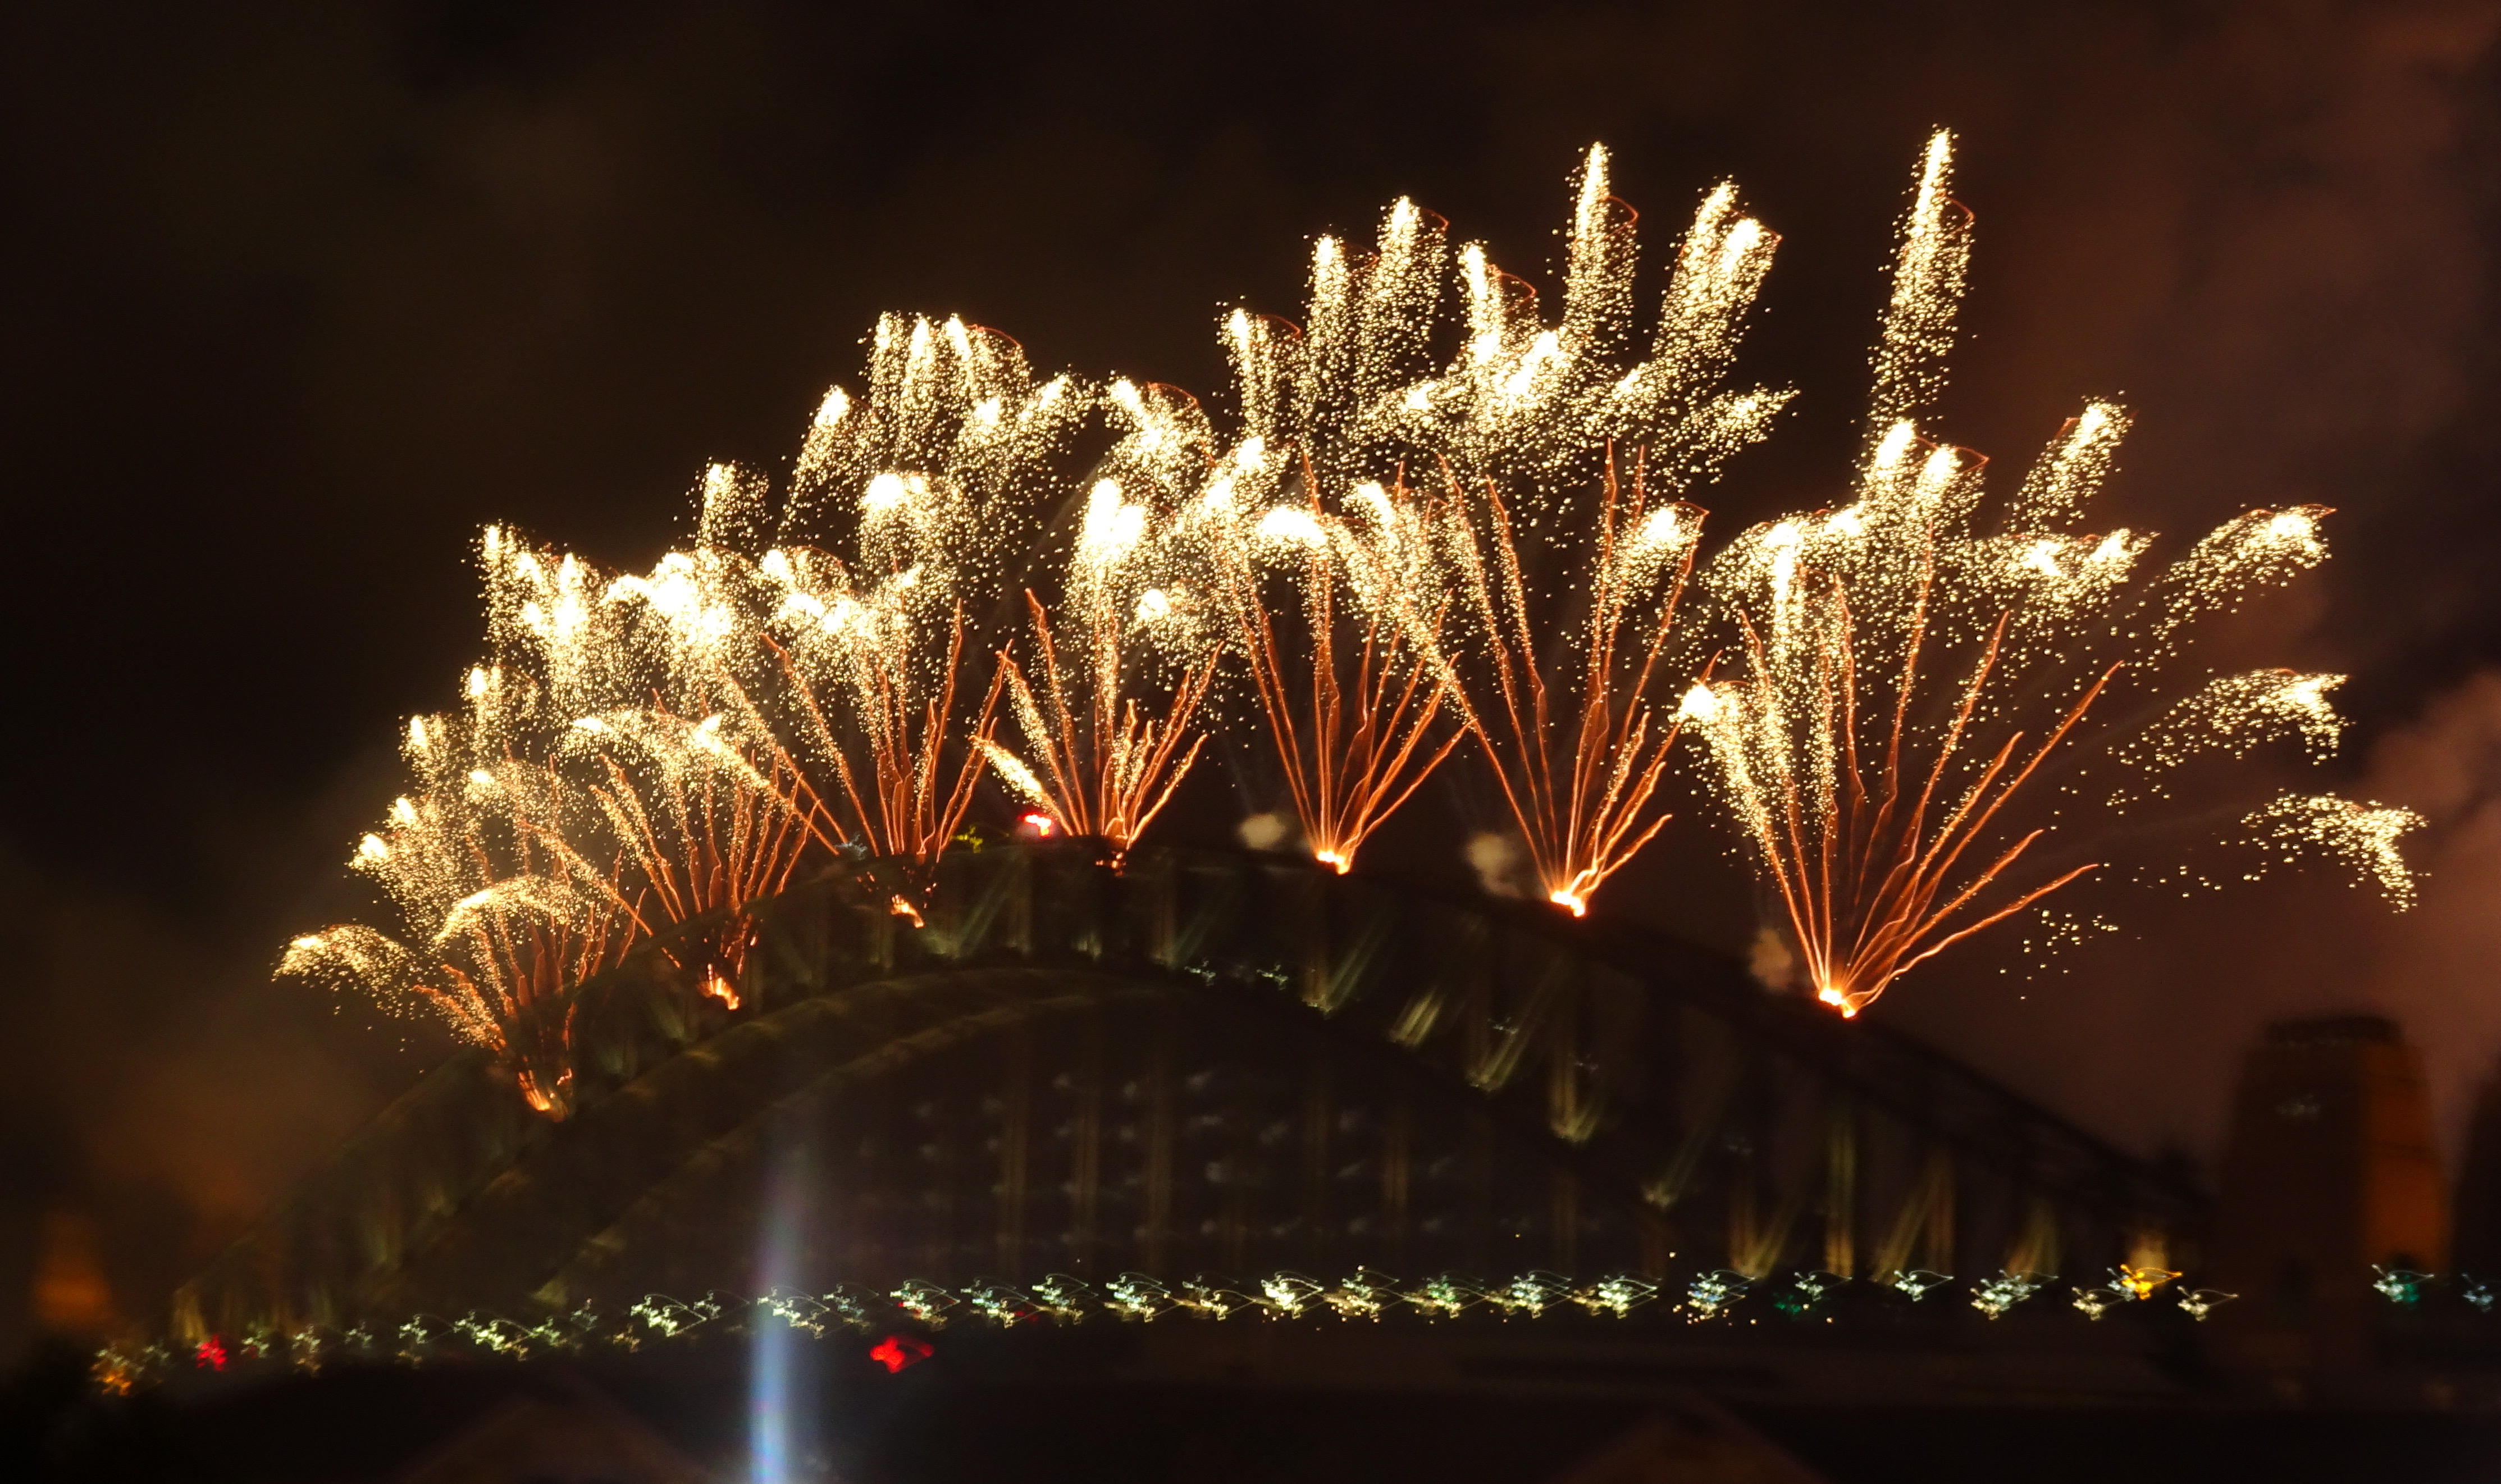 Fireworks on the Harbour Bridge in Sydney